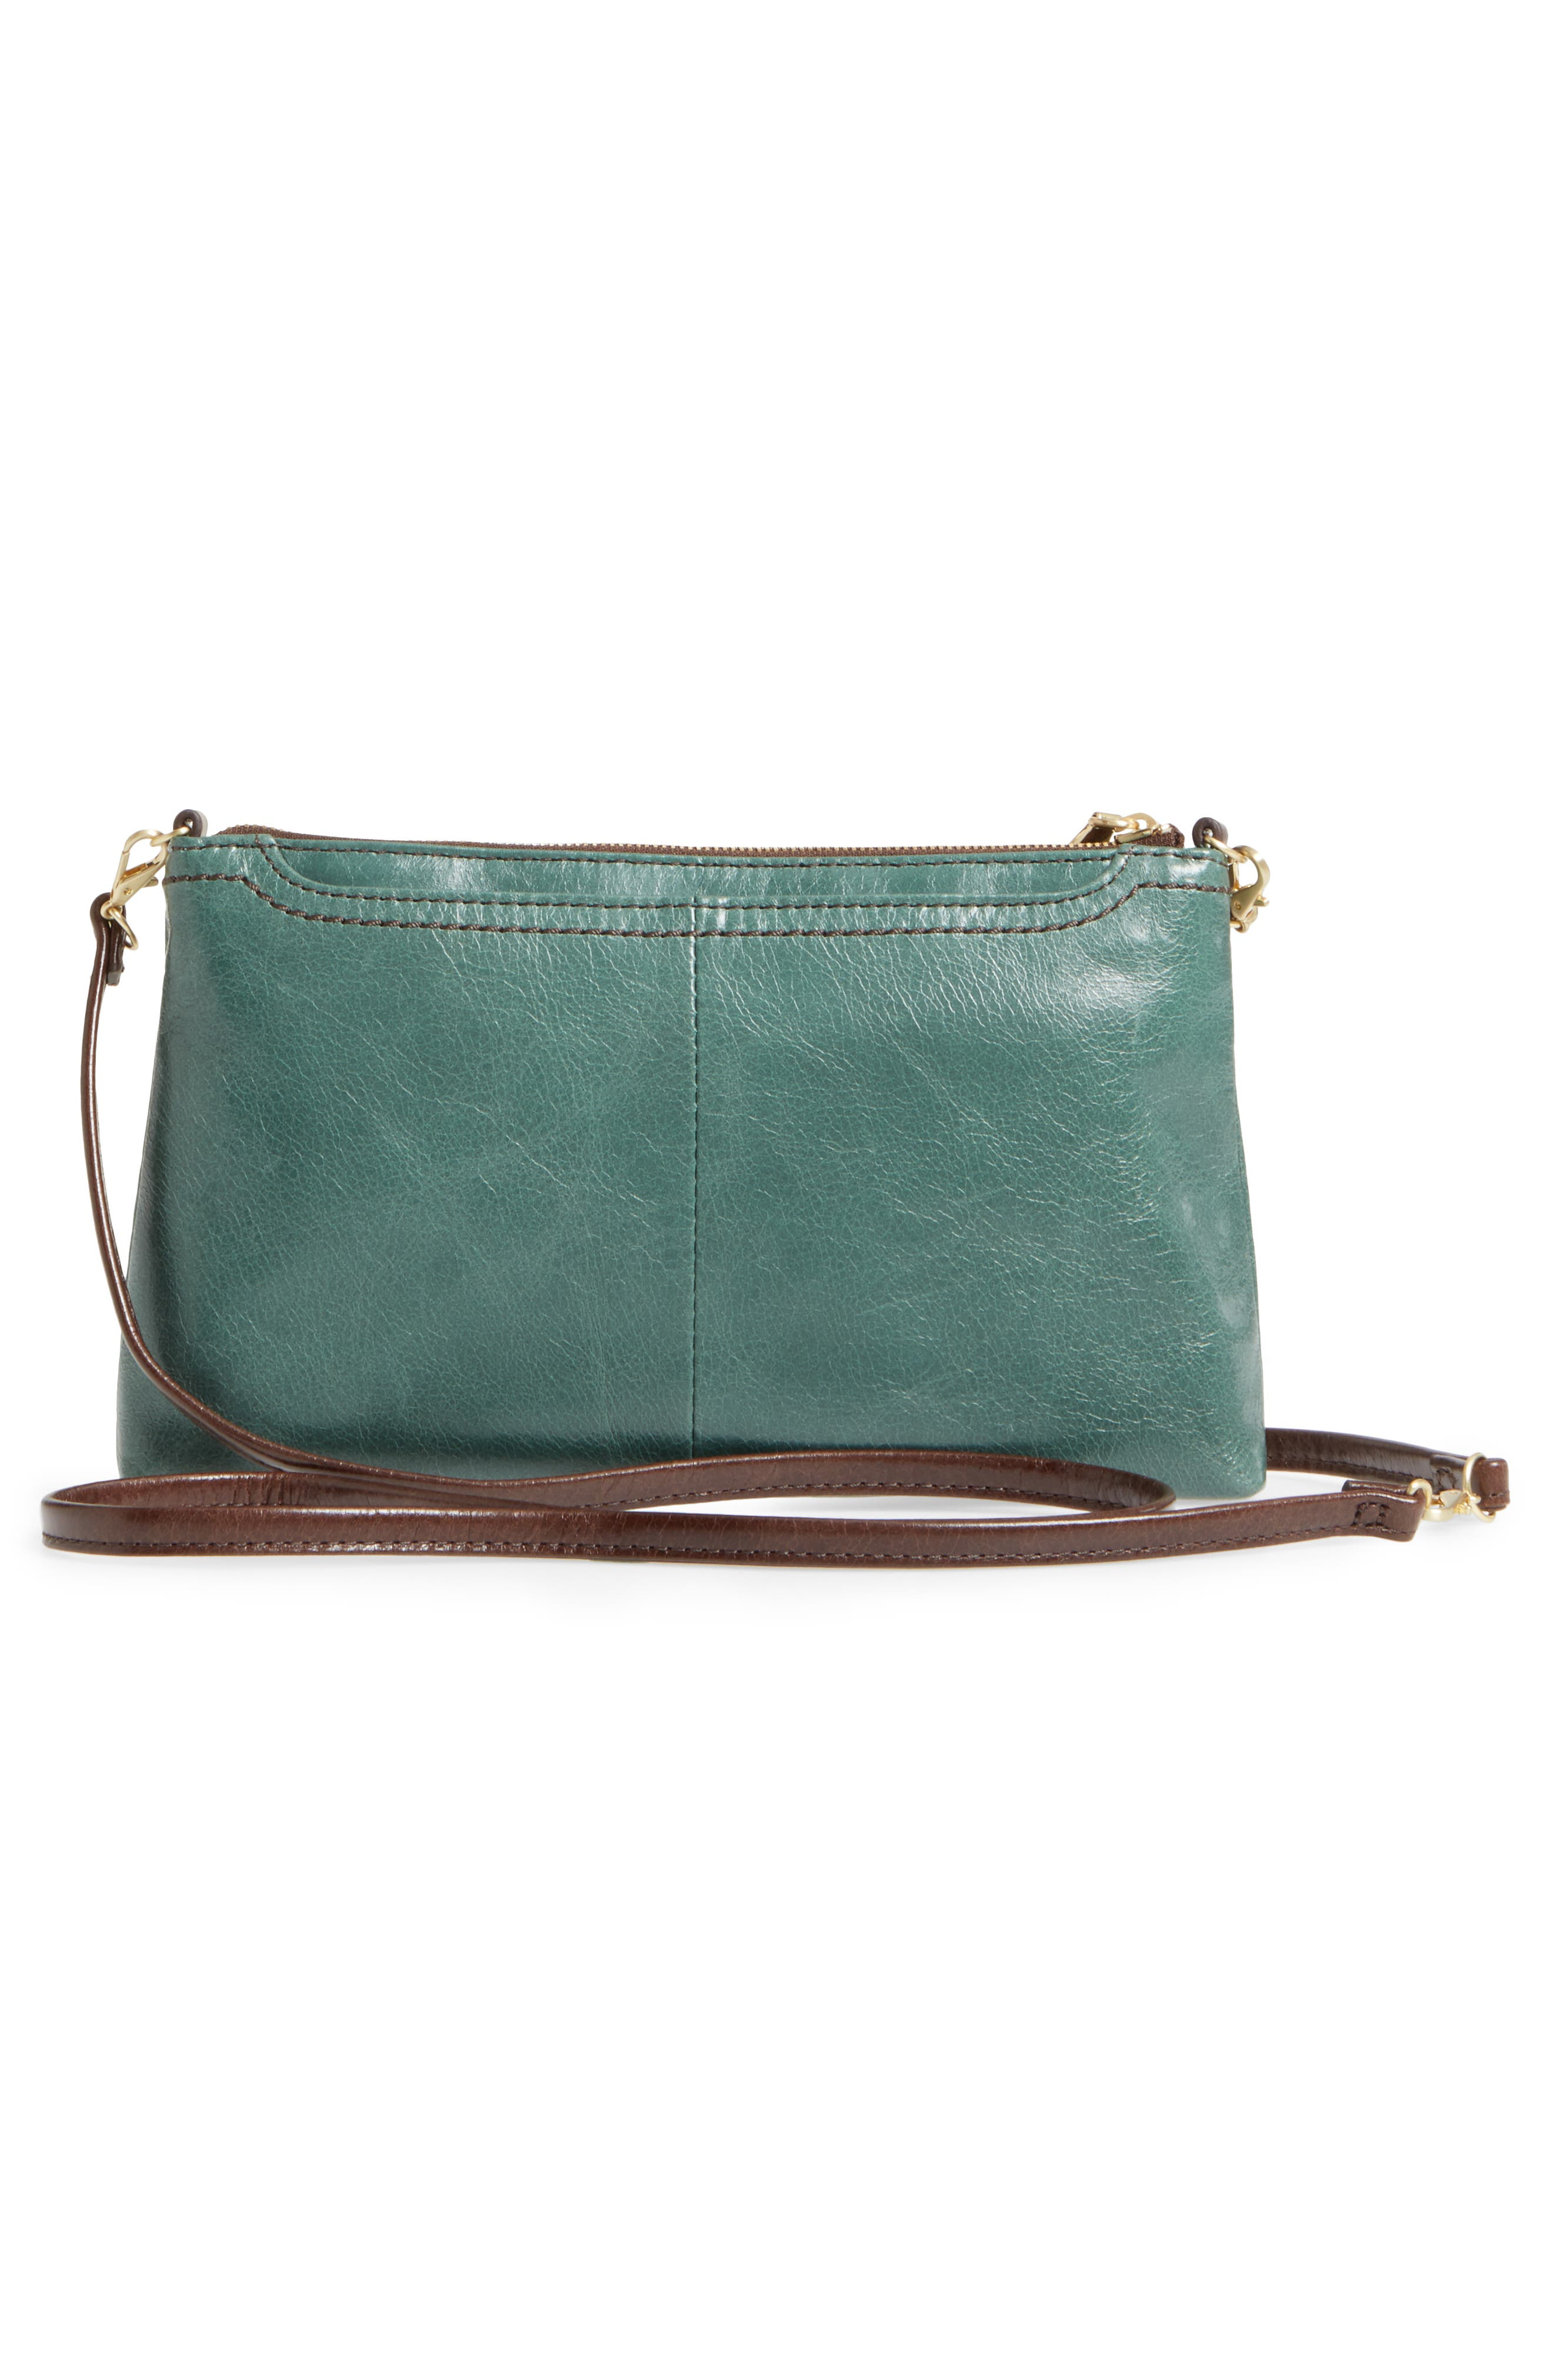 'Darcy' Leather Crossbody Bag,                             Alternate thumbnail 55, color,